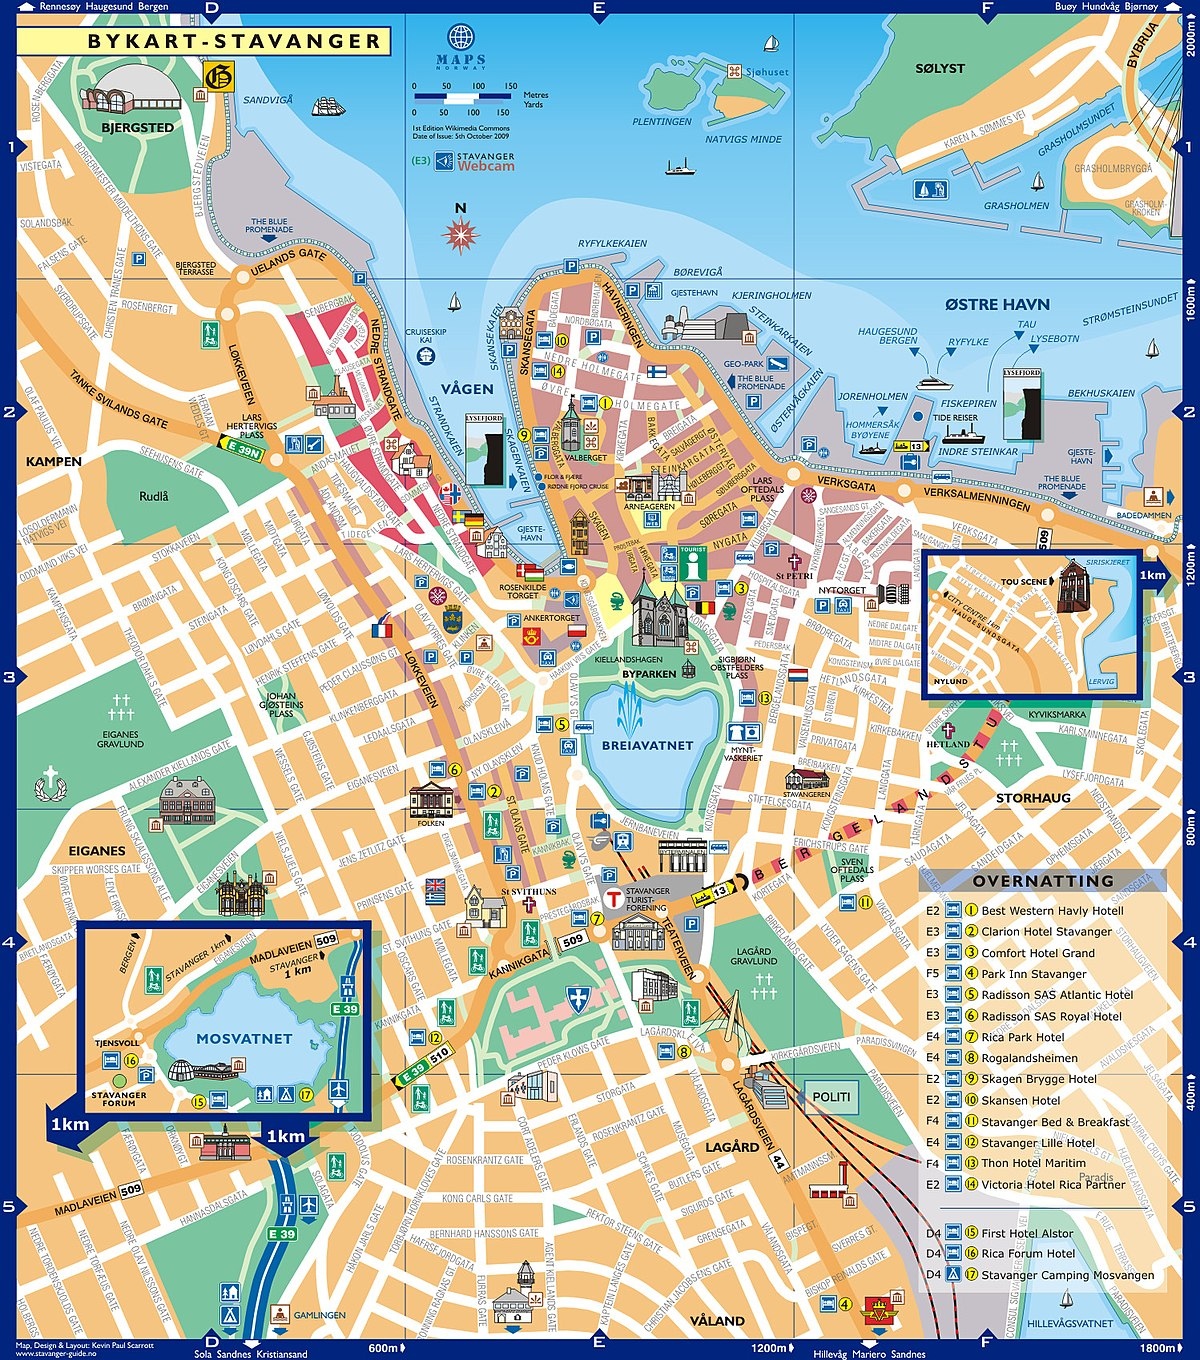 City map - Wikipedia Printable Map Of Norway Scales on flag of norway, only map of norway, major physical features in norway, regional map of norway, oslo norway, globe showing norway, transportation of norway, topographical map of norway, 5 major cities in norway, map of denmark and norway, large map of norway, detailed map of norway, just maps of norway, google map of norway, ferries of scotland and norway, political map of norway, easy map of norway, map of south norway, green map of norway, outline map of norway,